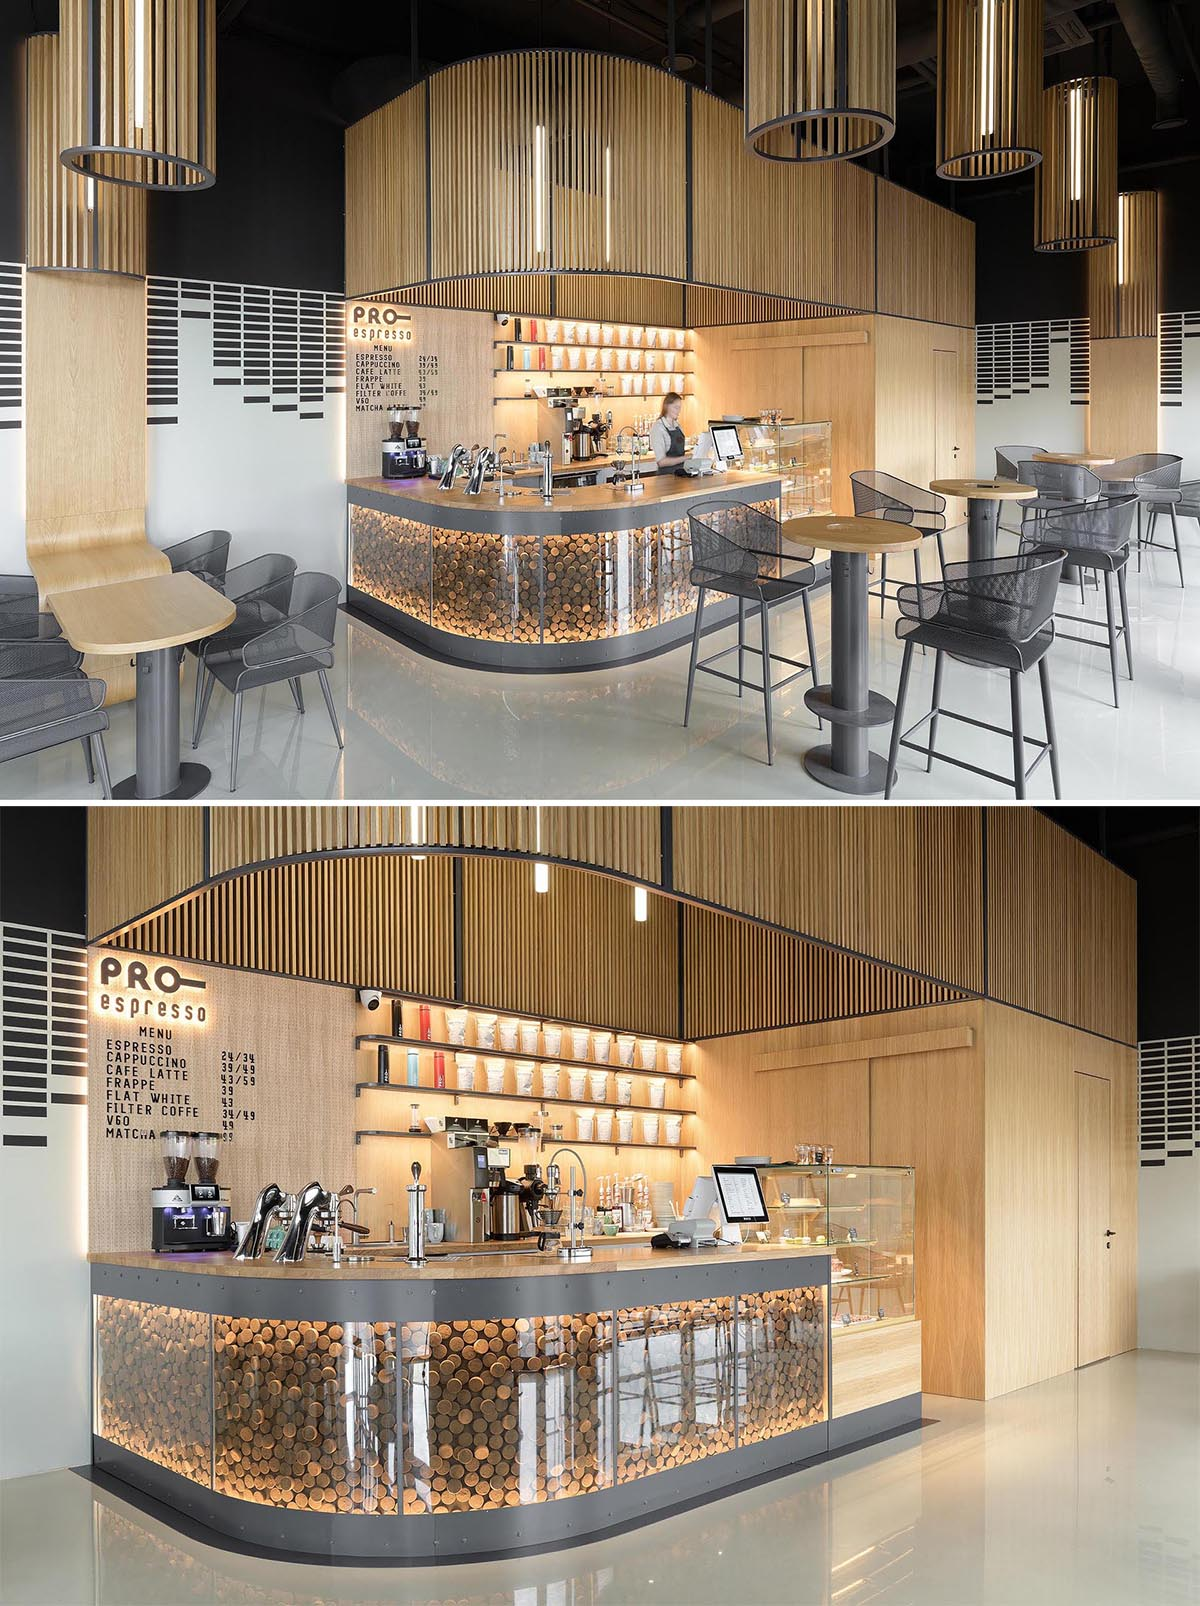 A service bar showcases the coffee machines, while the curved design complements the table designs and the column shaped lights hanging from the ceiling.